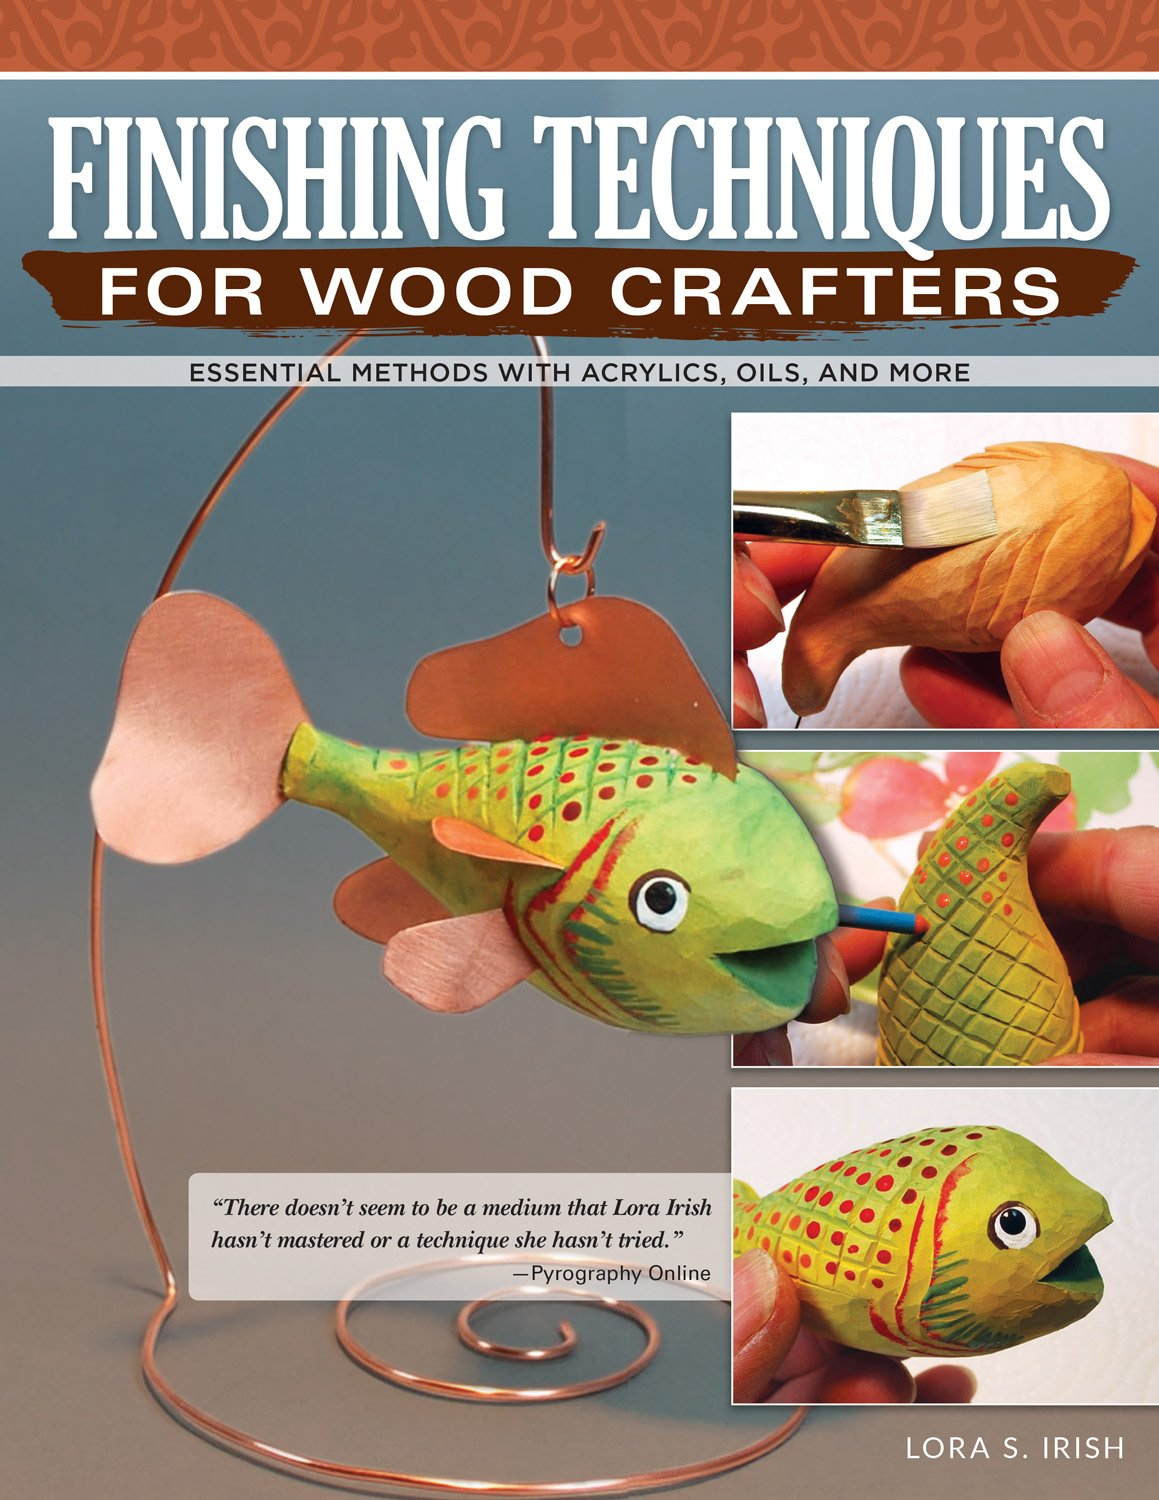 Download Finishing Techniques for Wood Crafters: Essential Methods with Acrylics, Oils, and More (Fox Chapel Publishing) Learn How to Choose, Prepare, & Apply the Perfect Finish for Your Creative Wood Projects PDF